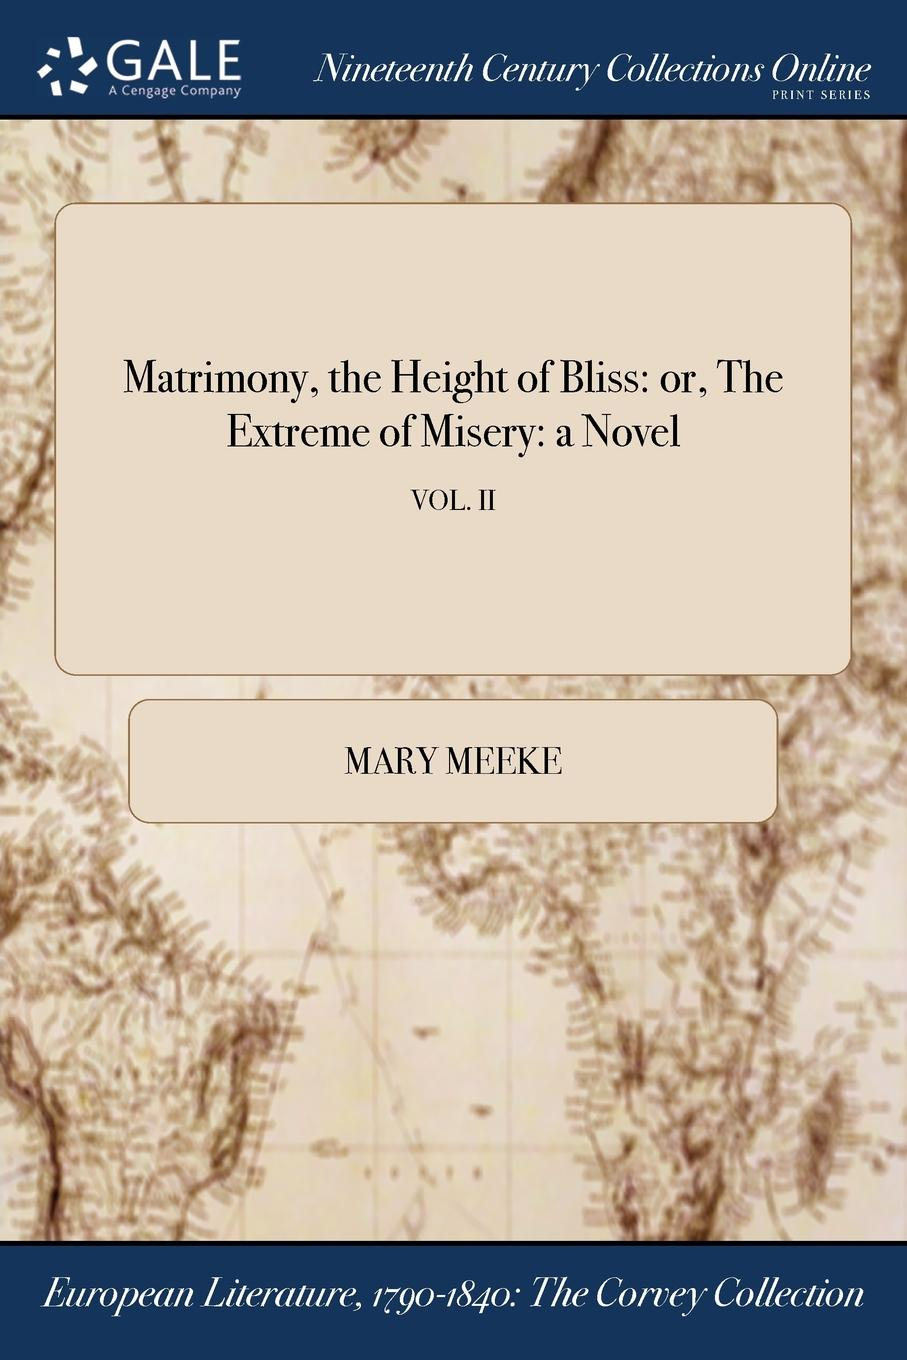 Mary Meeke Matrimony, the Height of Bliss. or, The Extreme of Misery: a Novel; VOL. II